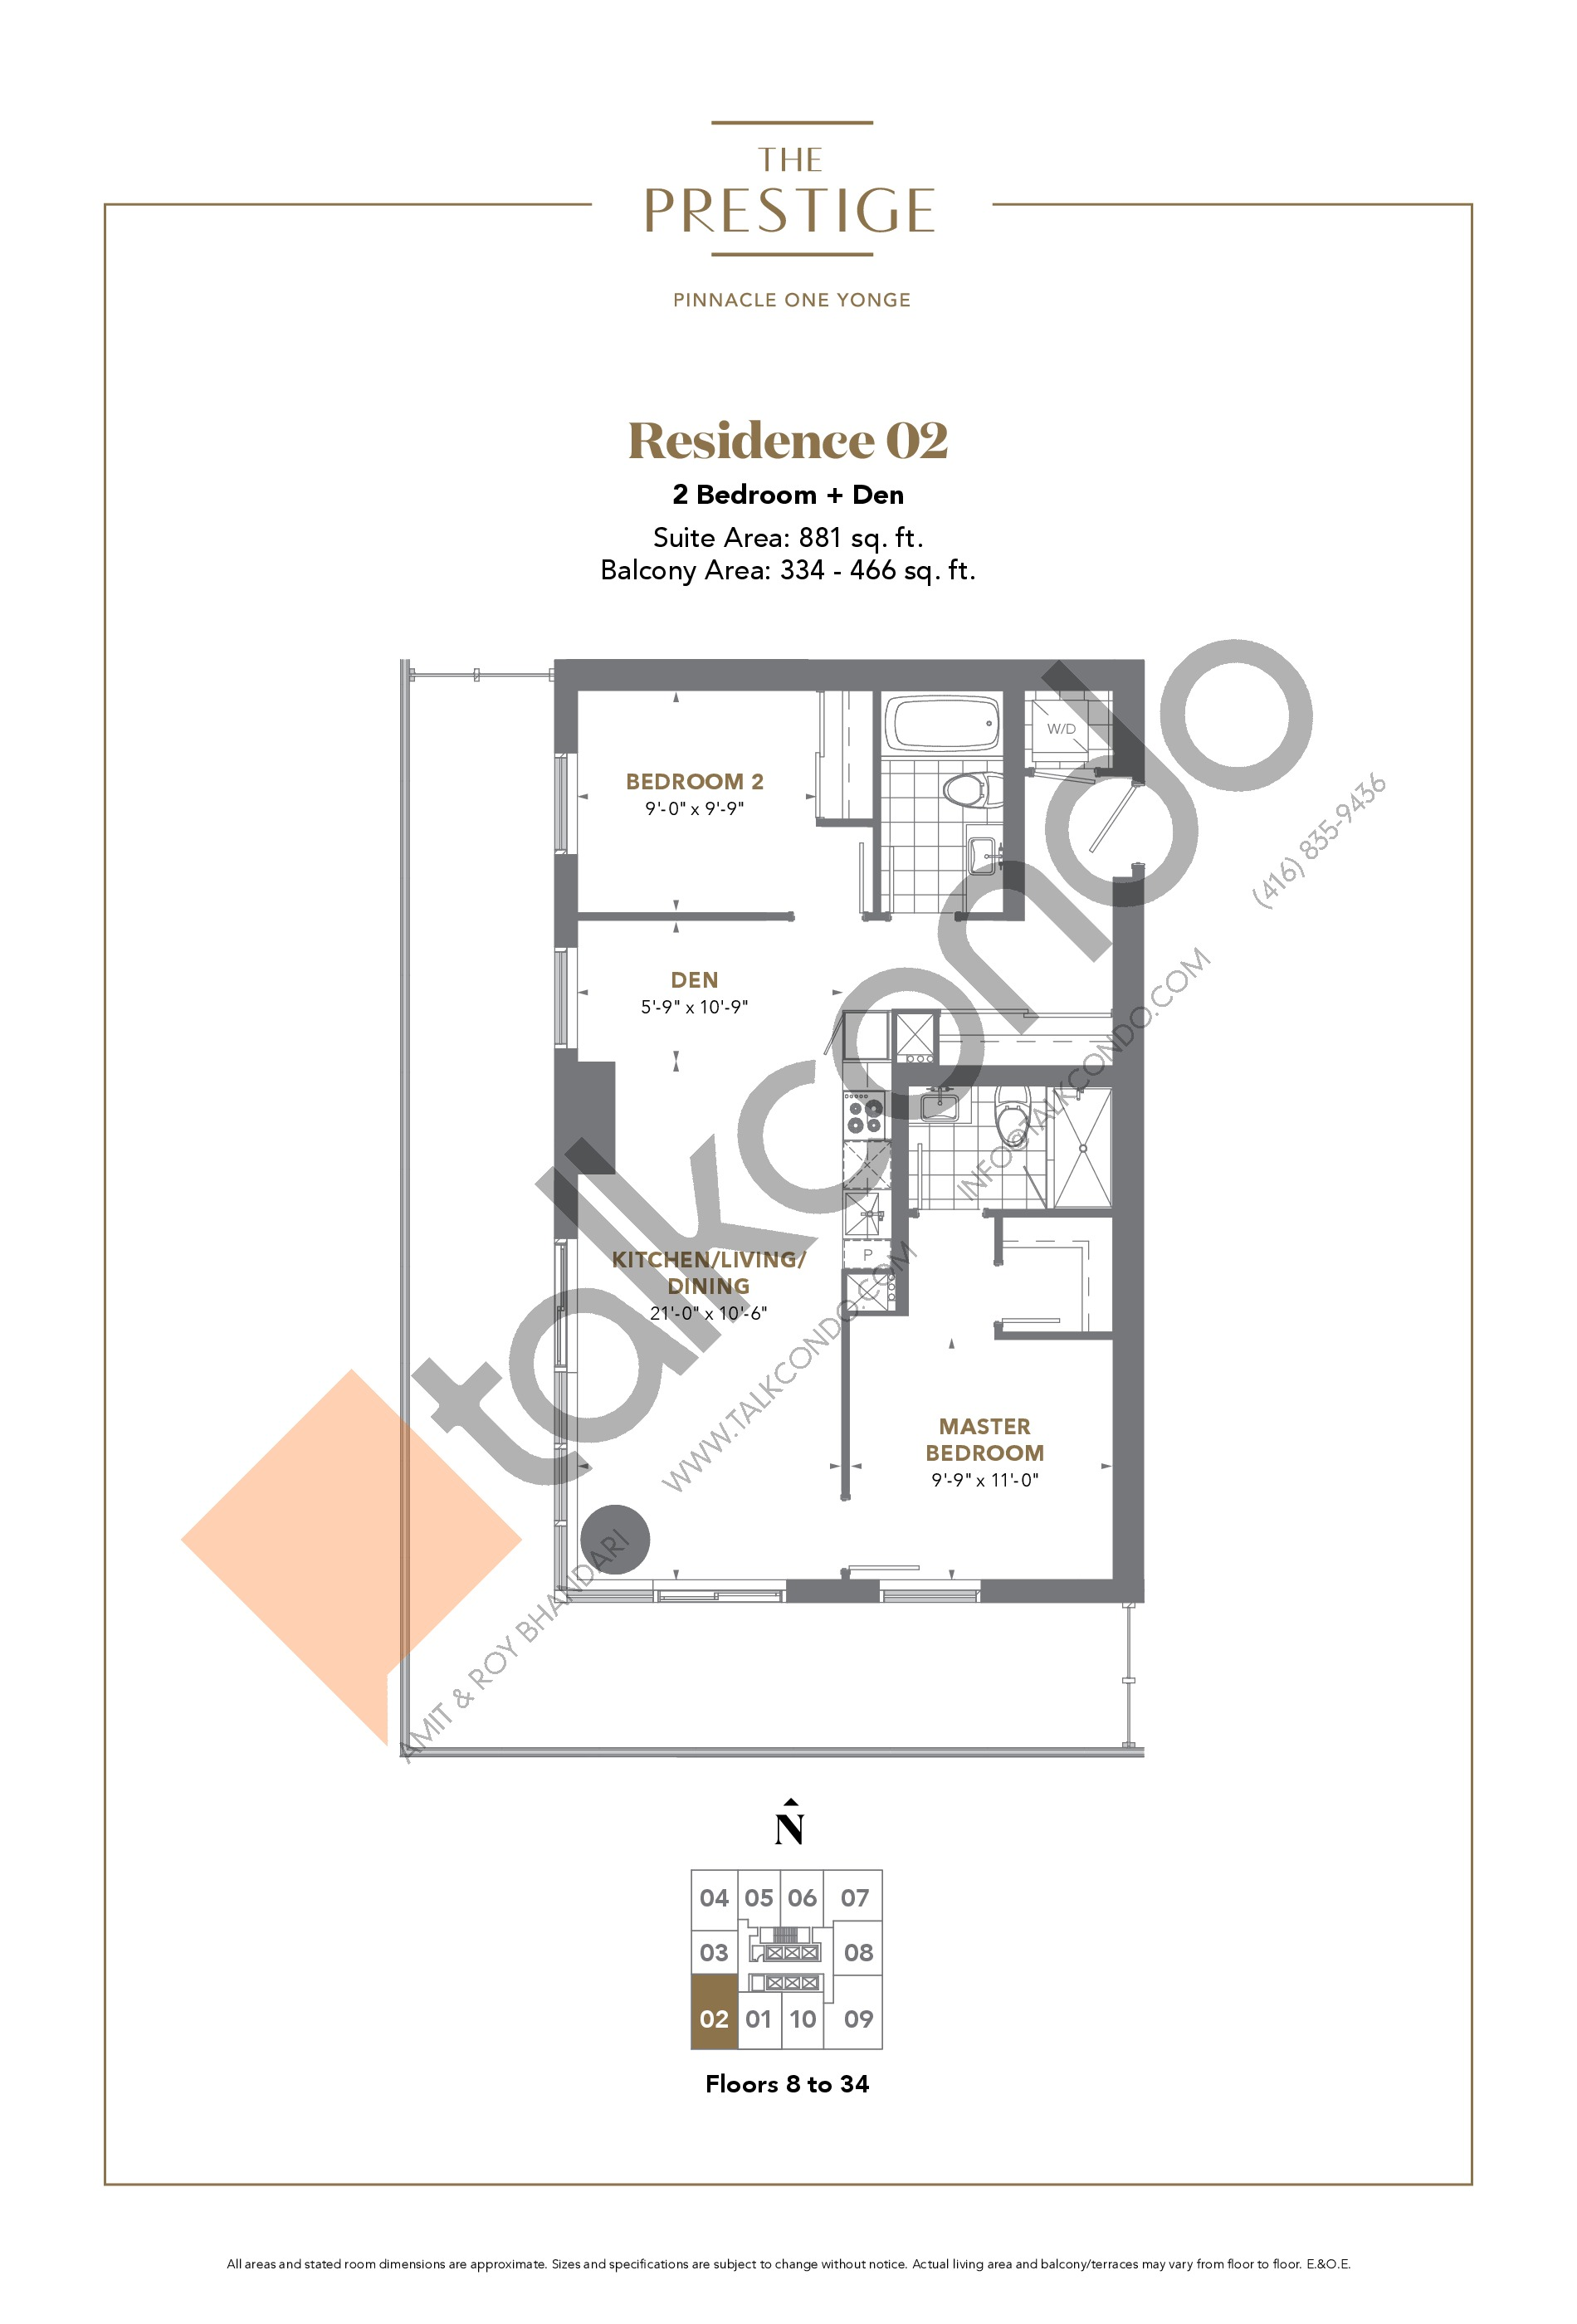 Residence 02 Floor Plan at The Prestige Condos at Pinnacle One Yonge - 881 sq.ft